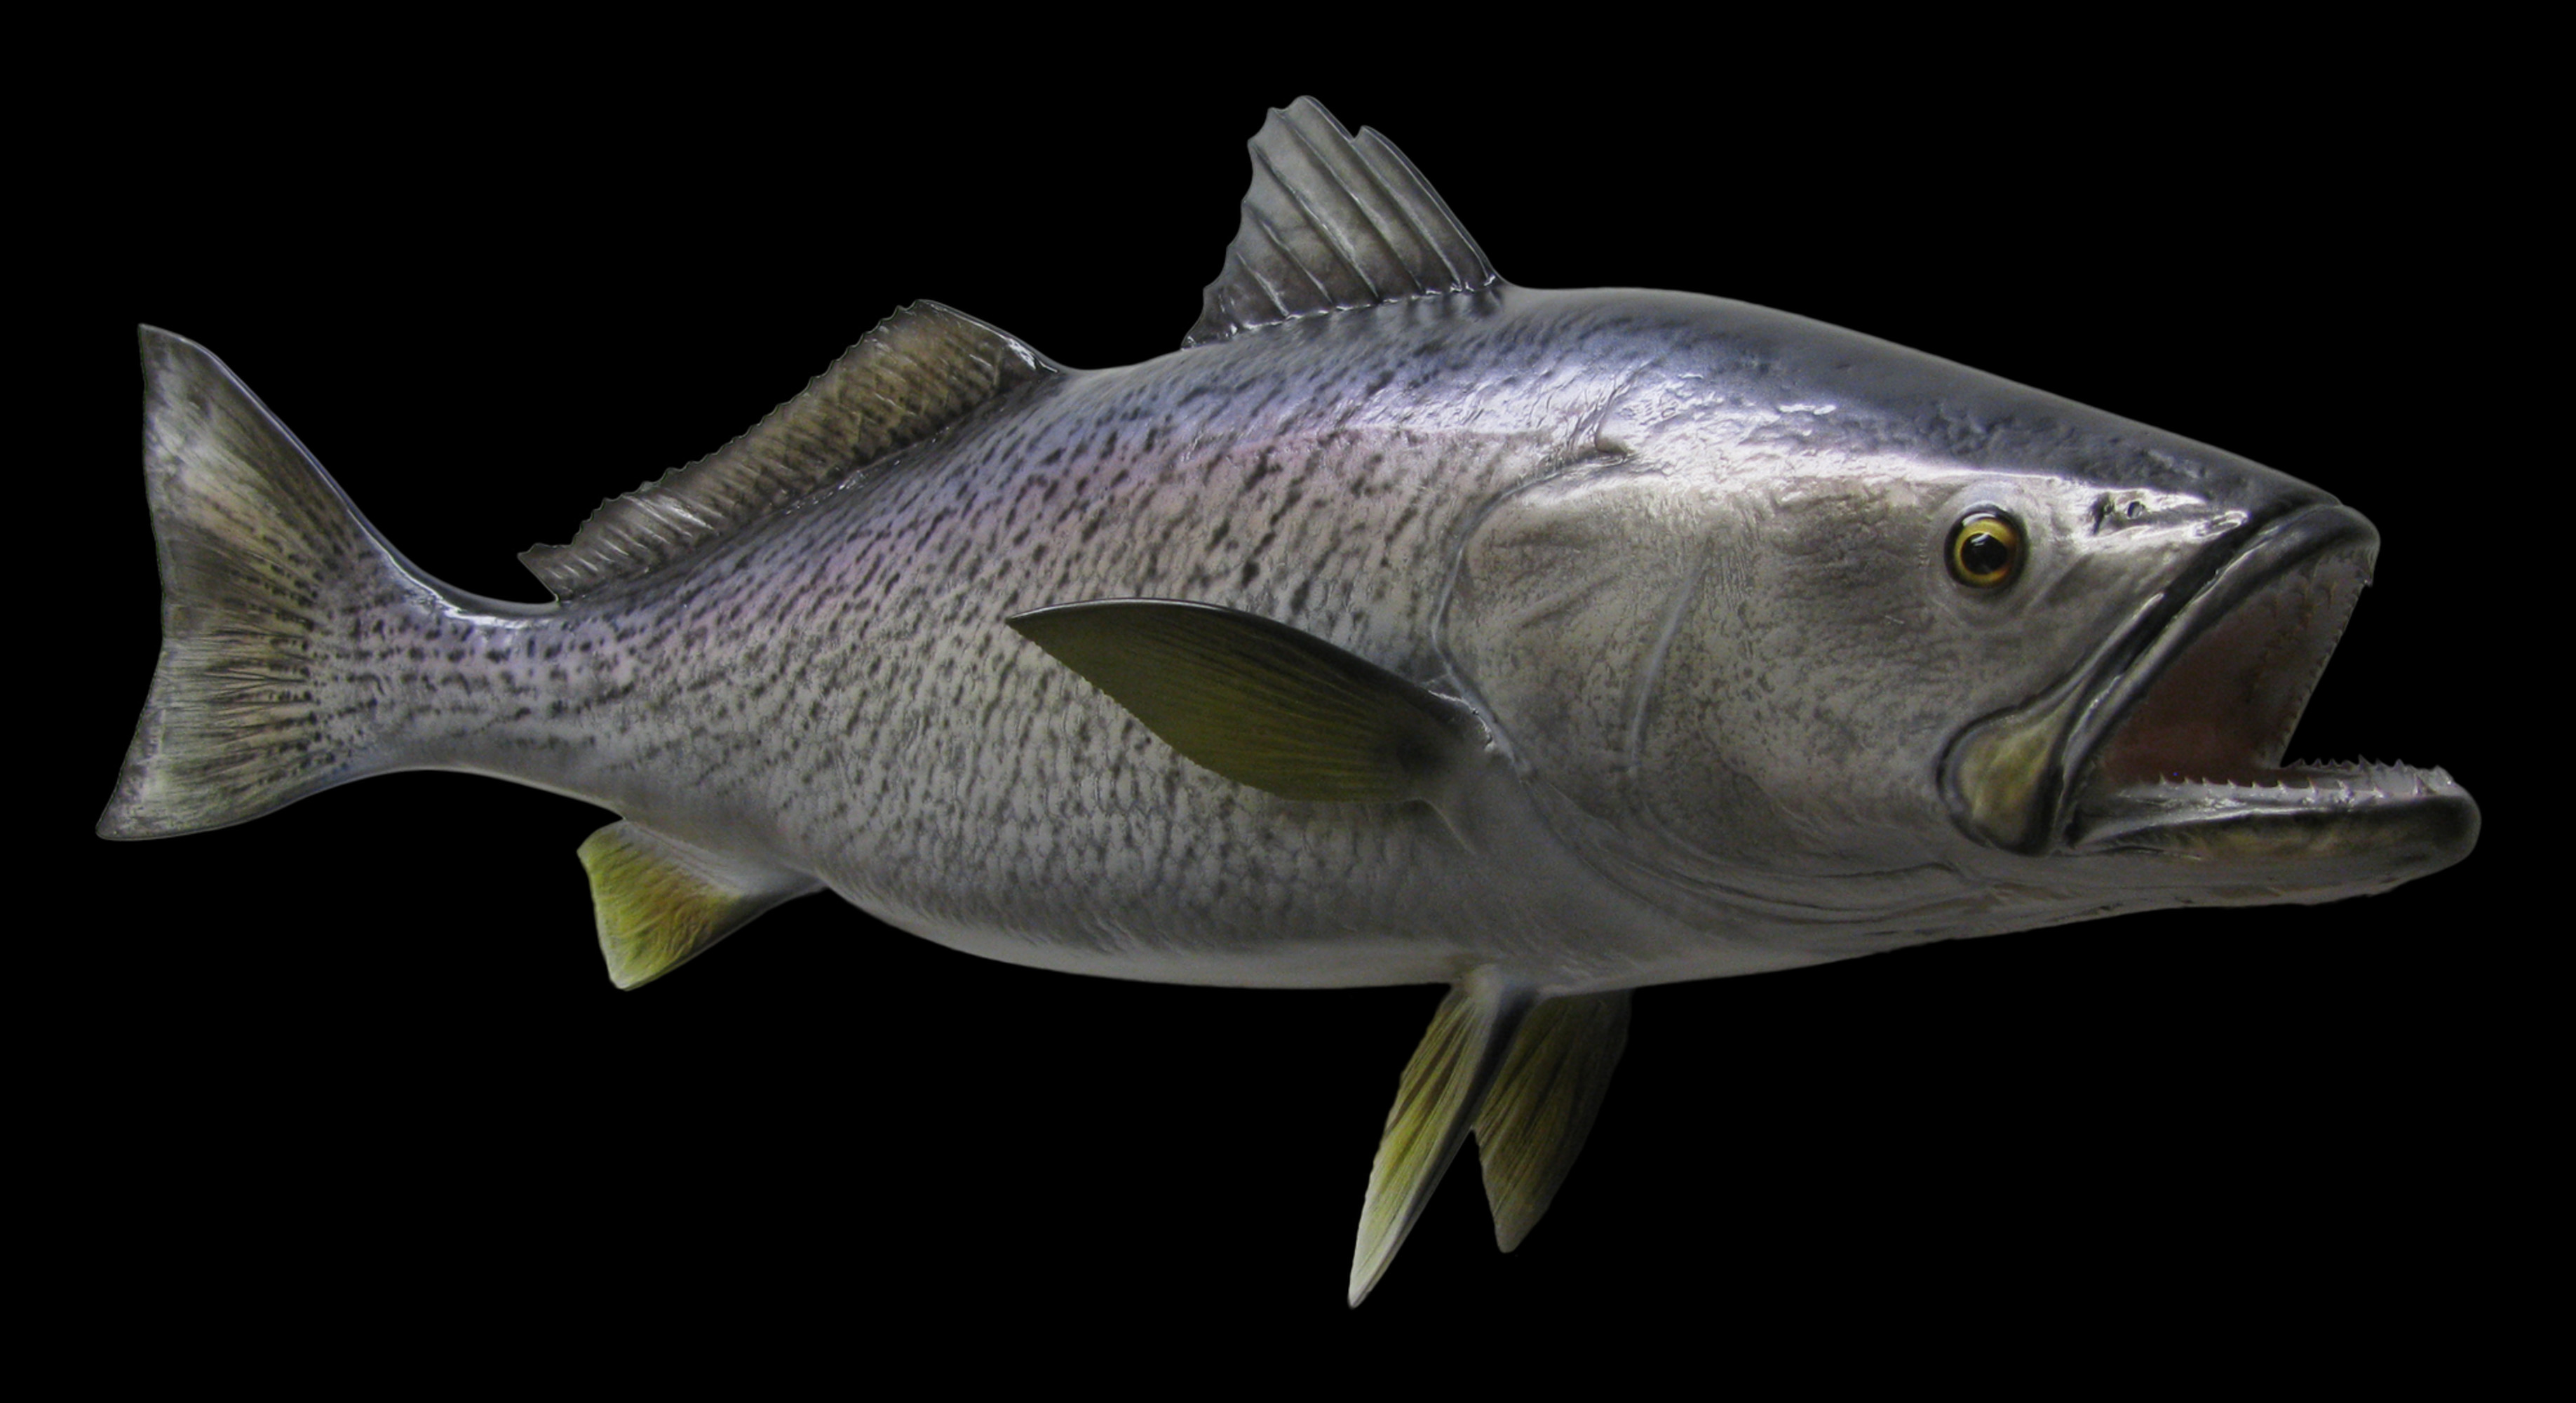 Sea trout weakfish fish mount and fish replicas coast for Replica fish mounts